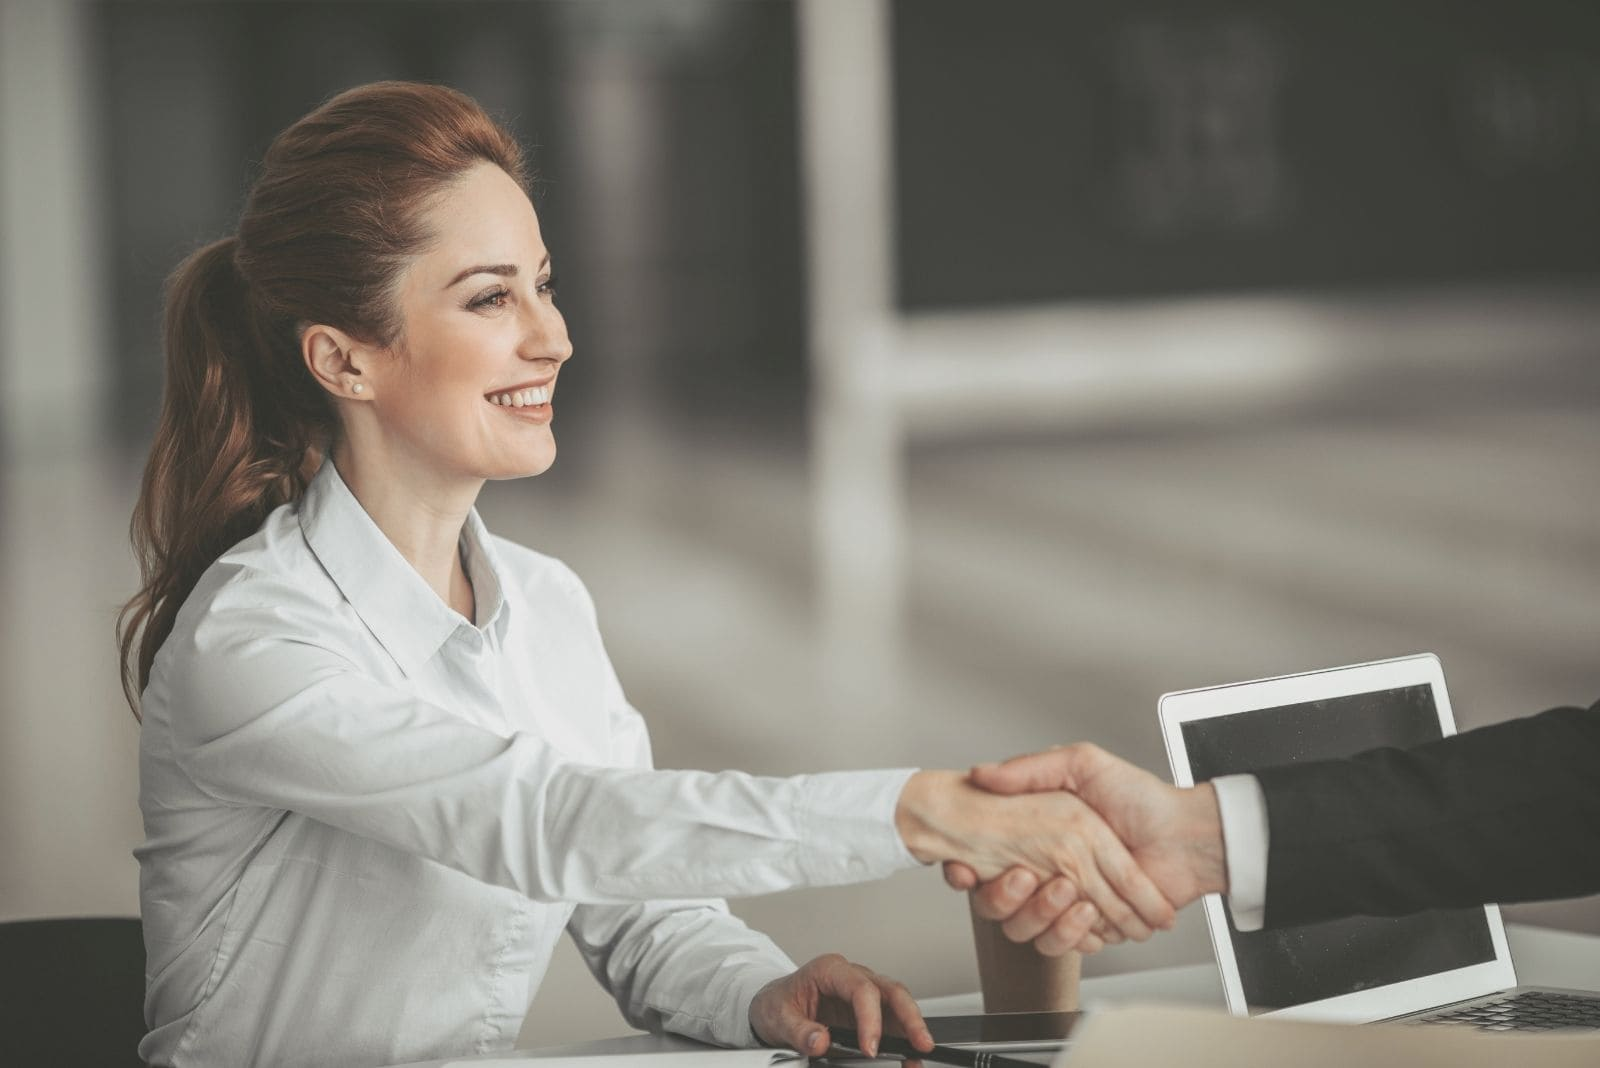 positive business woman handshaking a man's arm inside the office